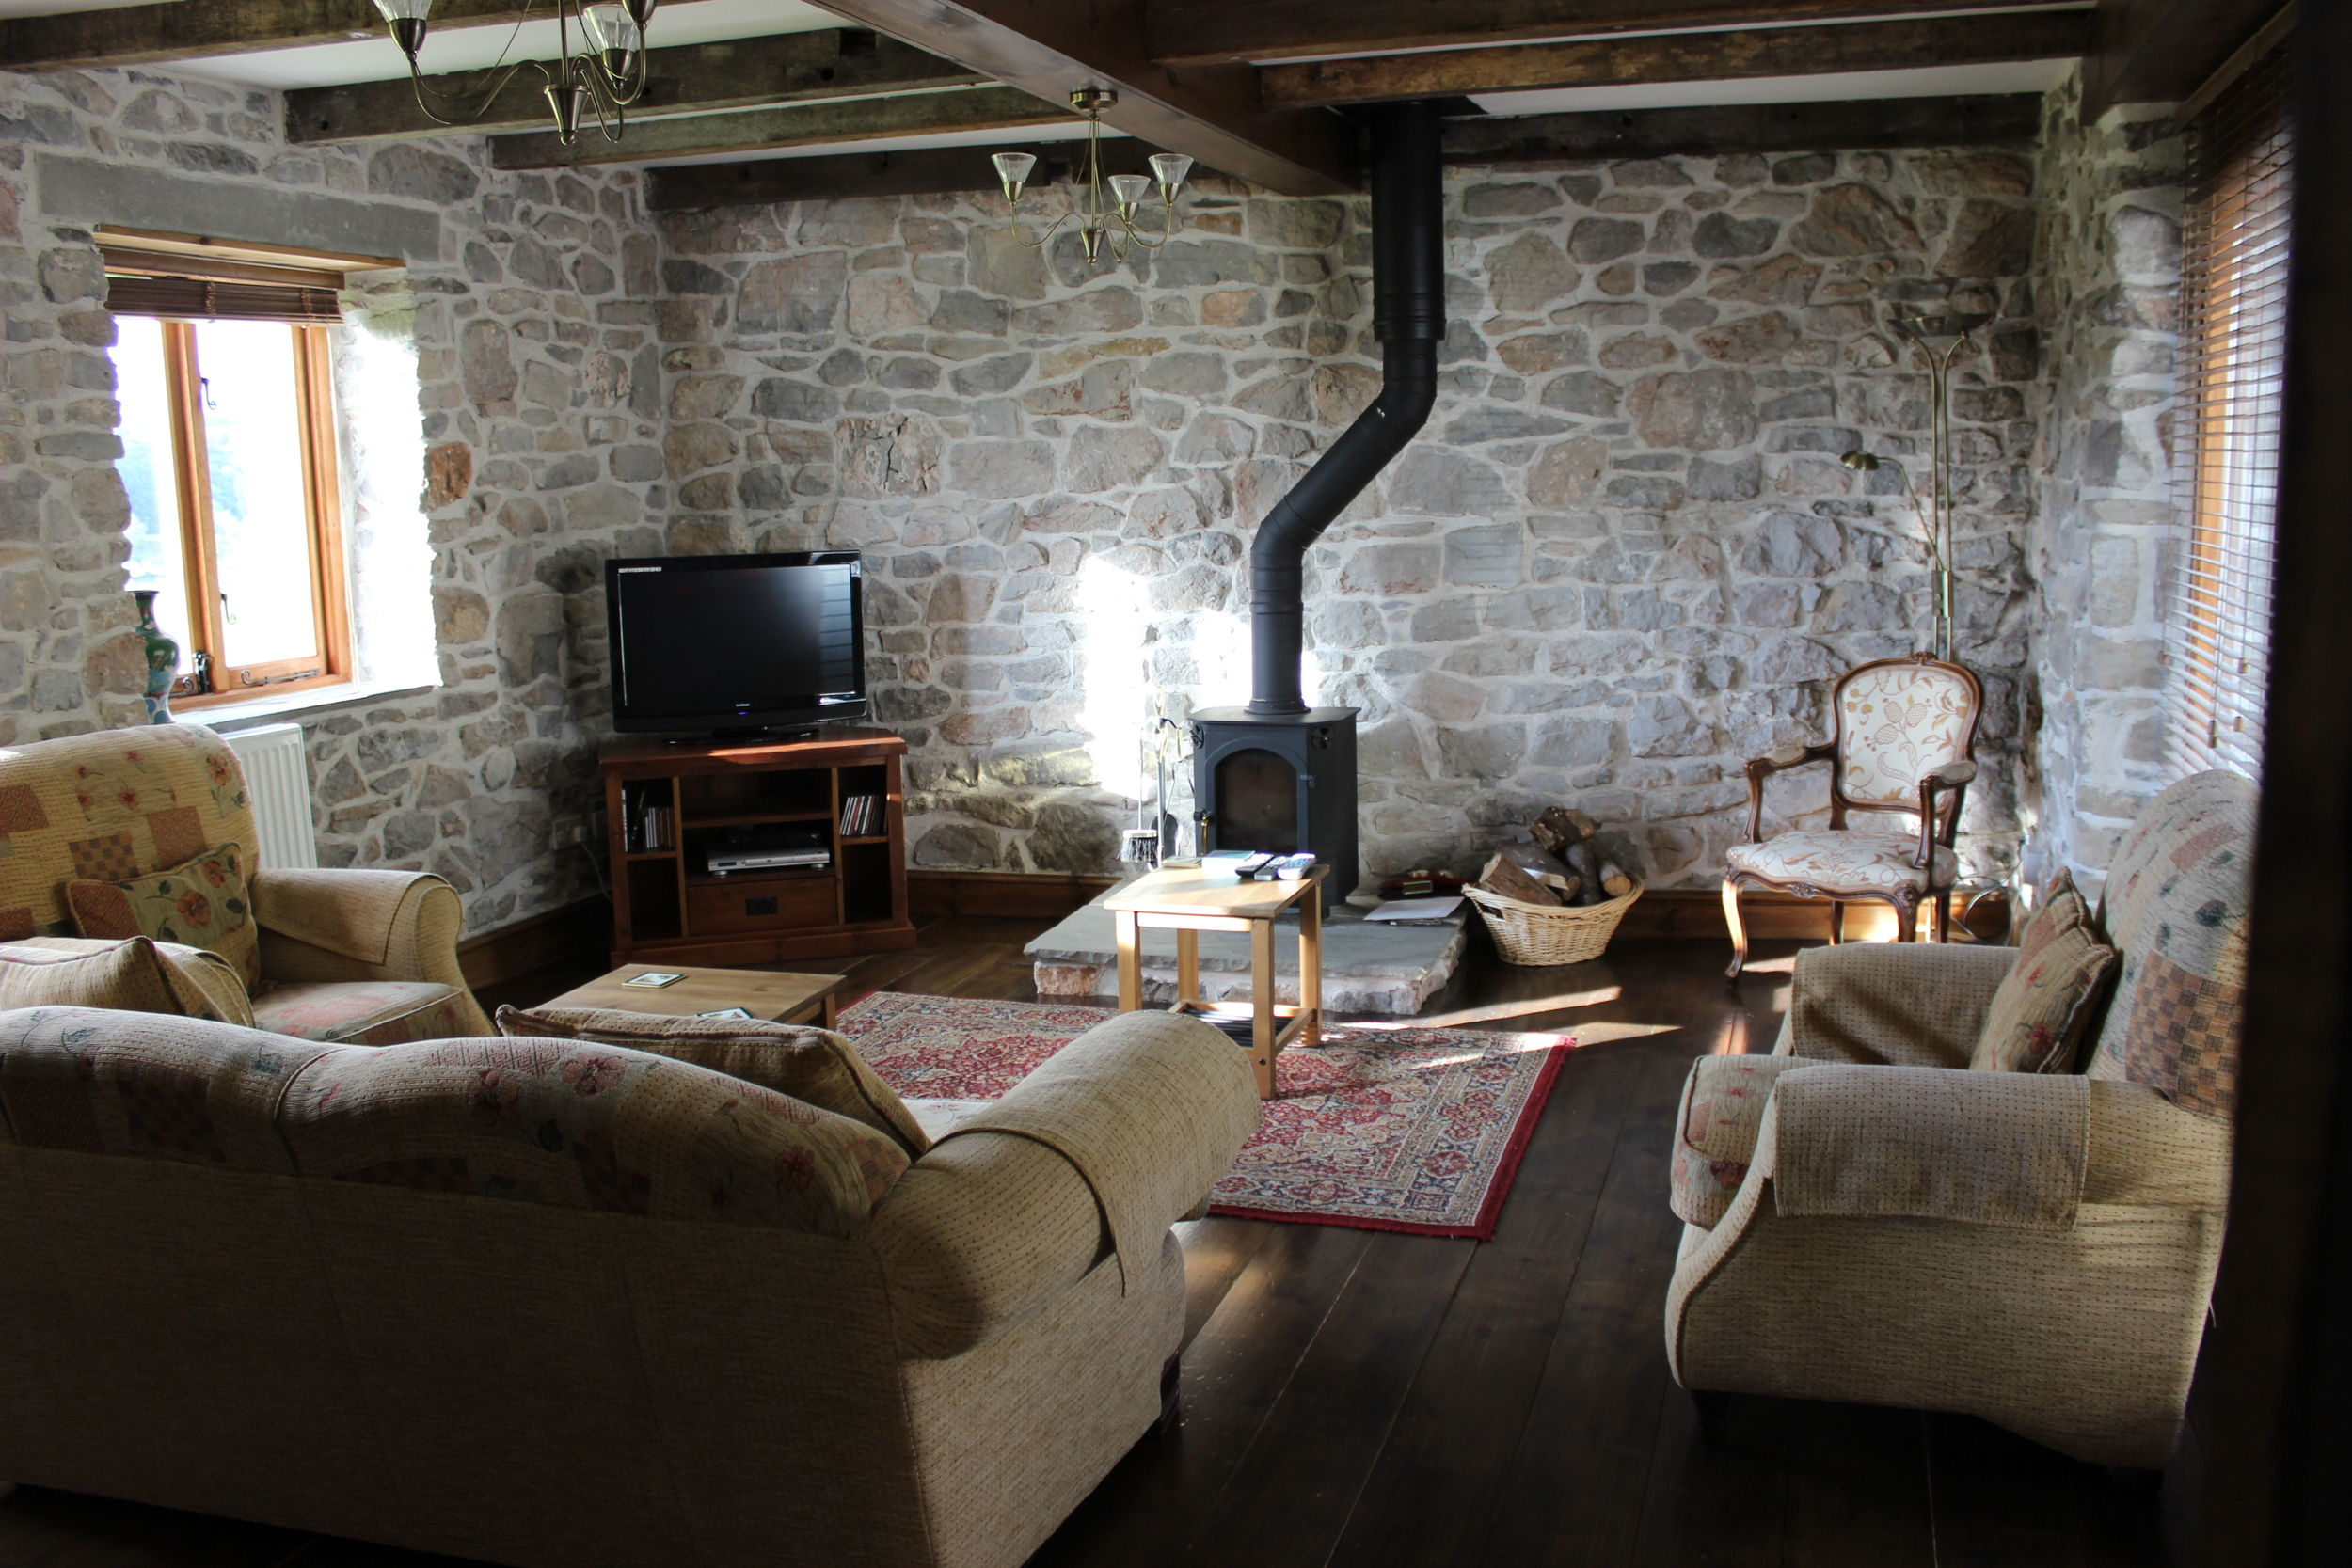 Much of the original charm was carefully preserved in the coach house.